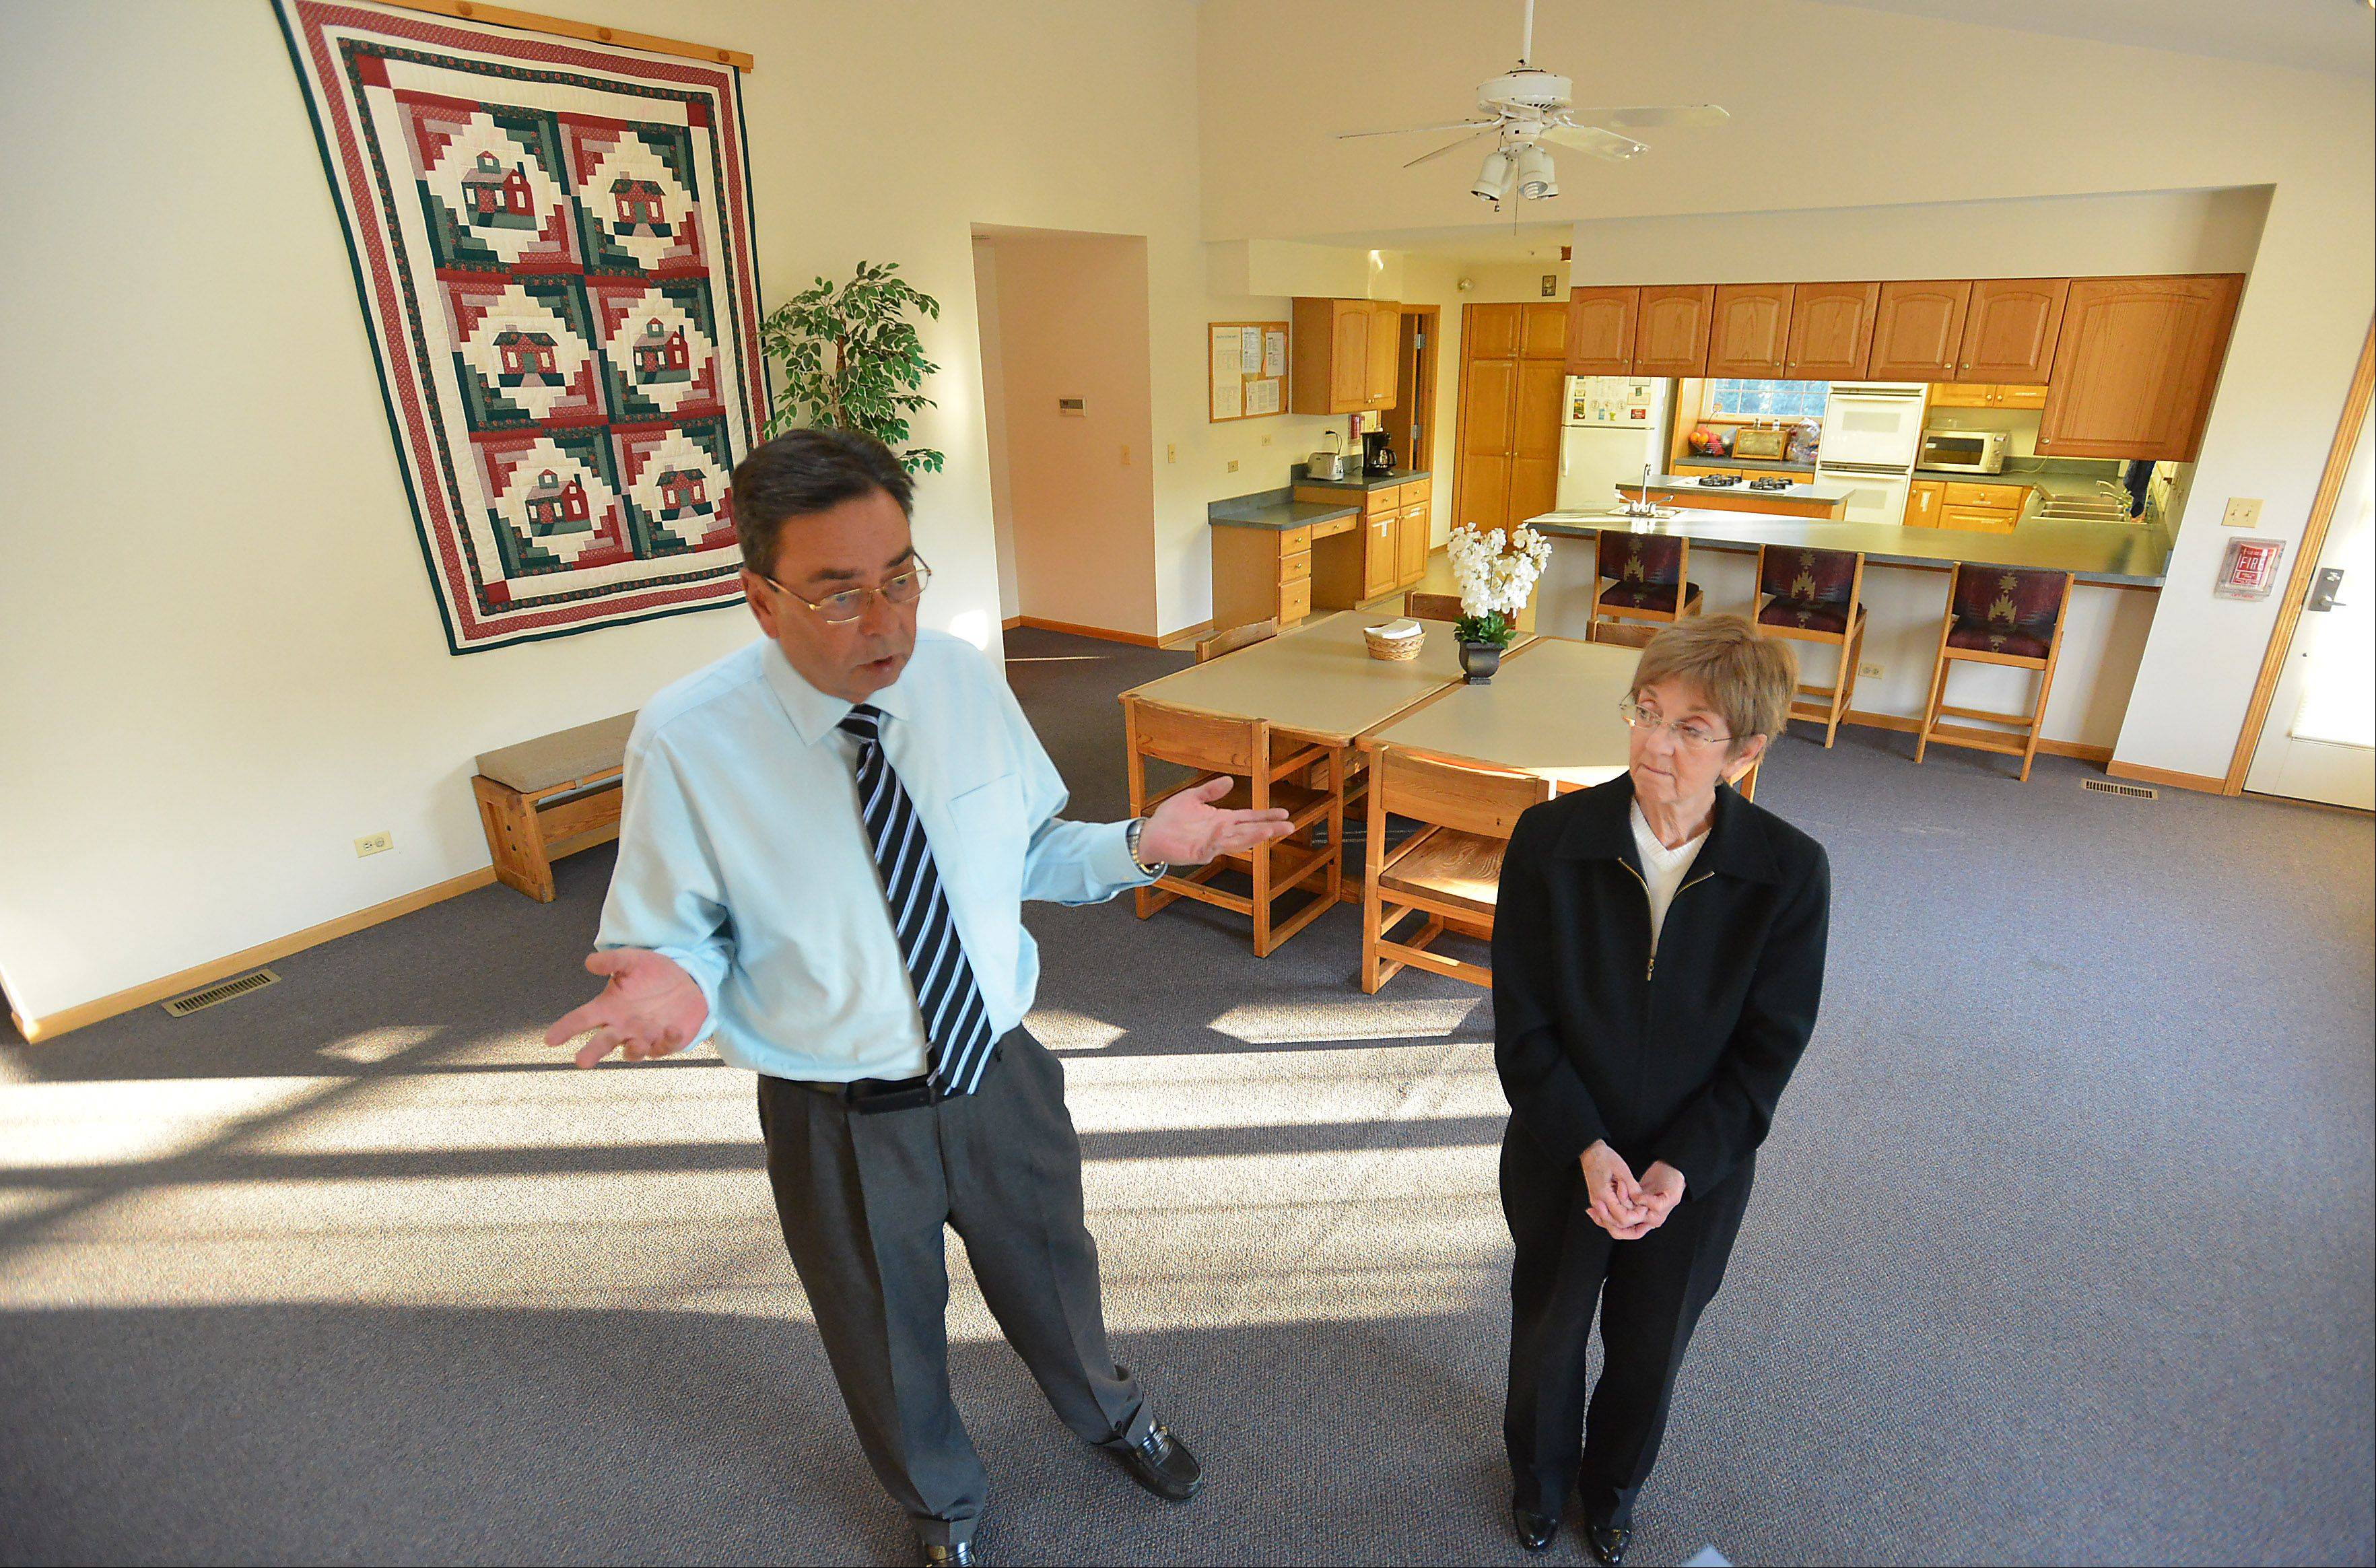 Tom Eagan, associate director of Shelter, and Pat Beck, executive director, stand in the living quarters of the group home in Palatine that is a home for adolescent boys that face trouble in their homes.